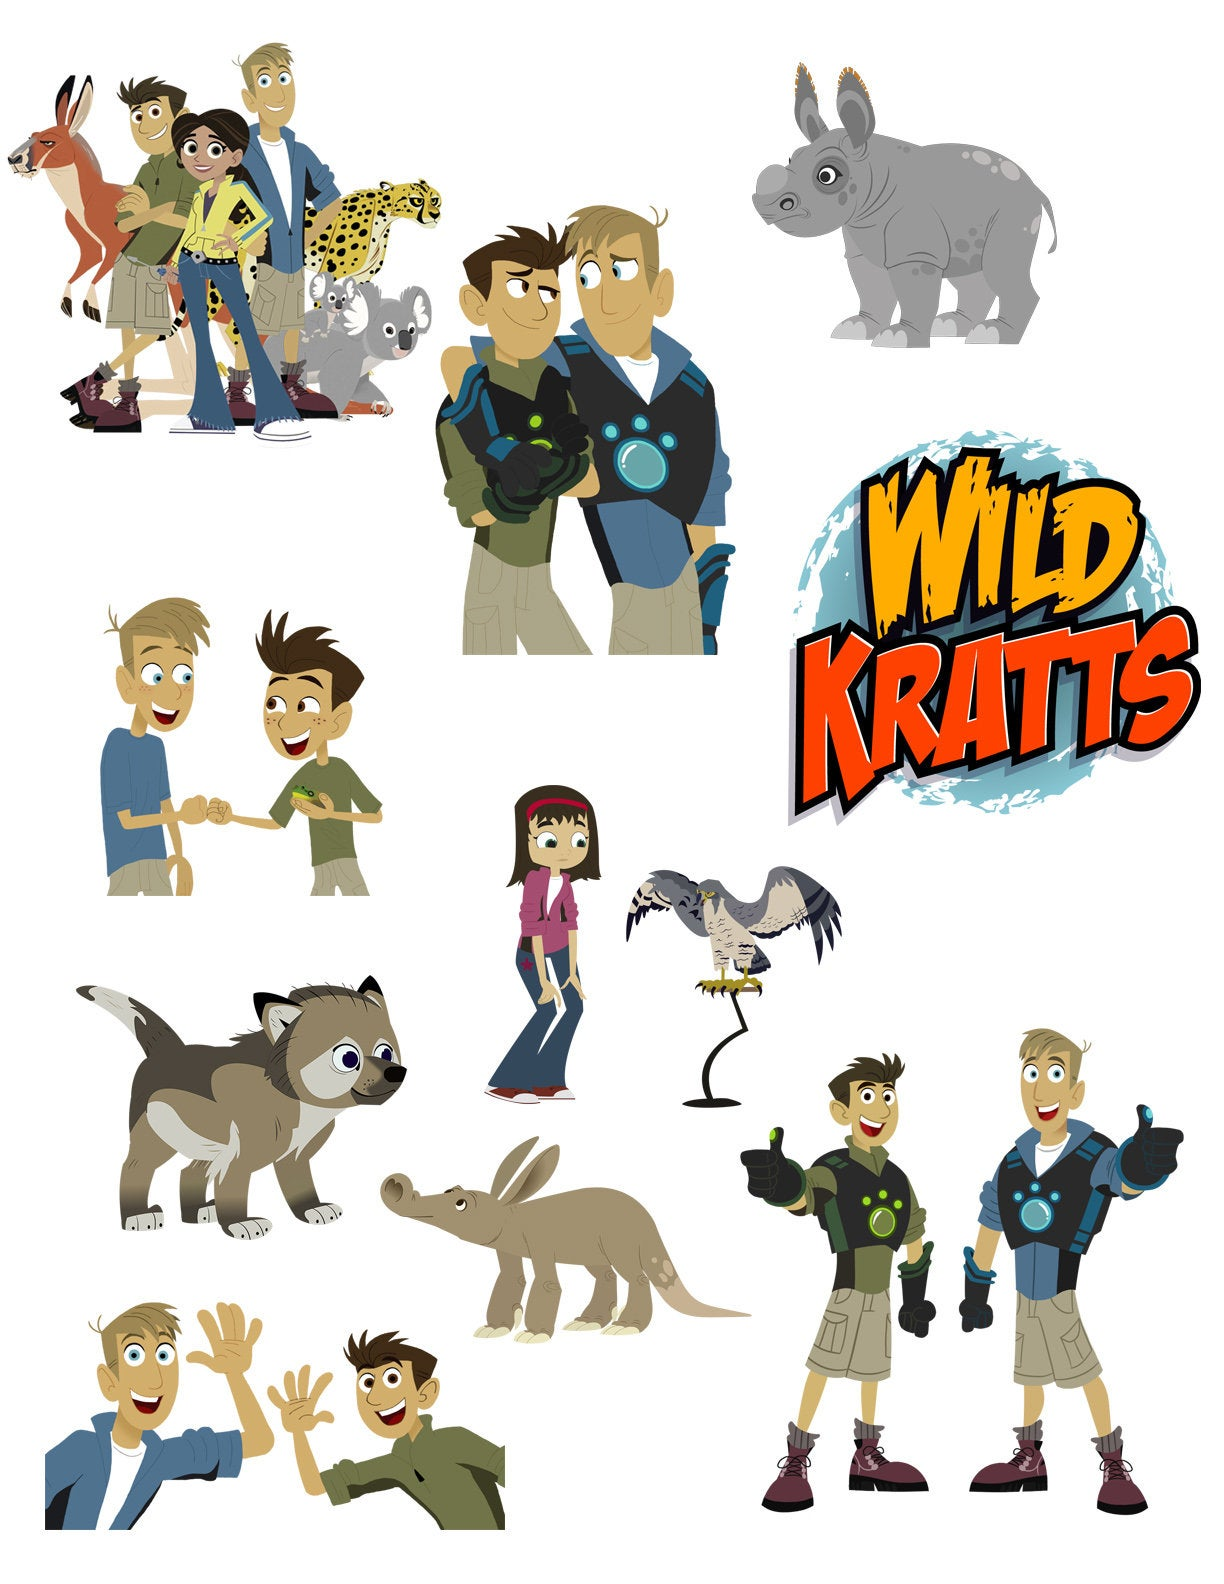 Wild Kratts Printouts INSTANT DOWNLOAD Clipart Imags Cutouts Printable  Centerpieces Decorations Animals Chris Martin Jungle Birthday Gift.